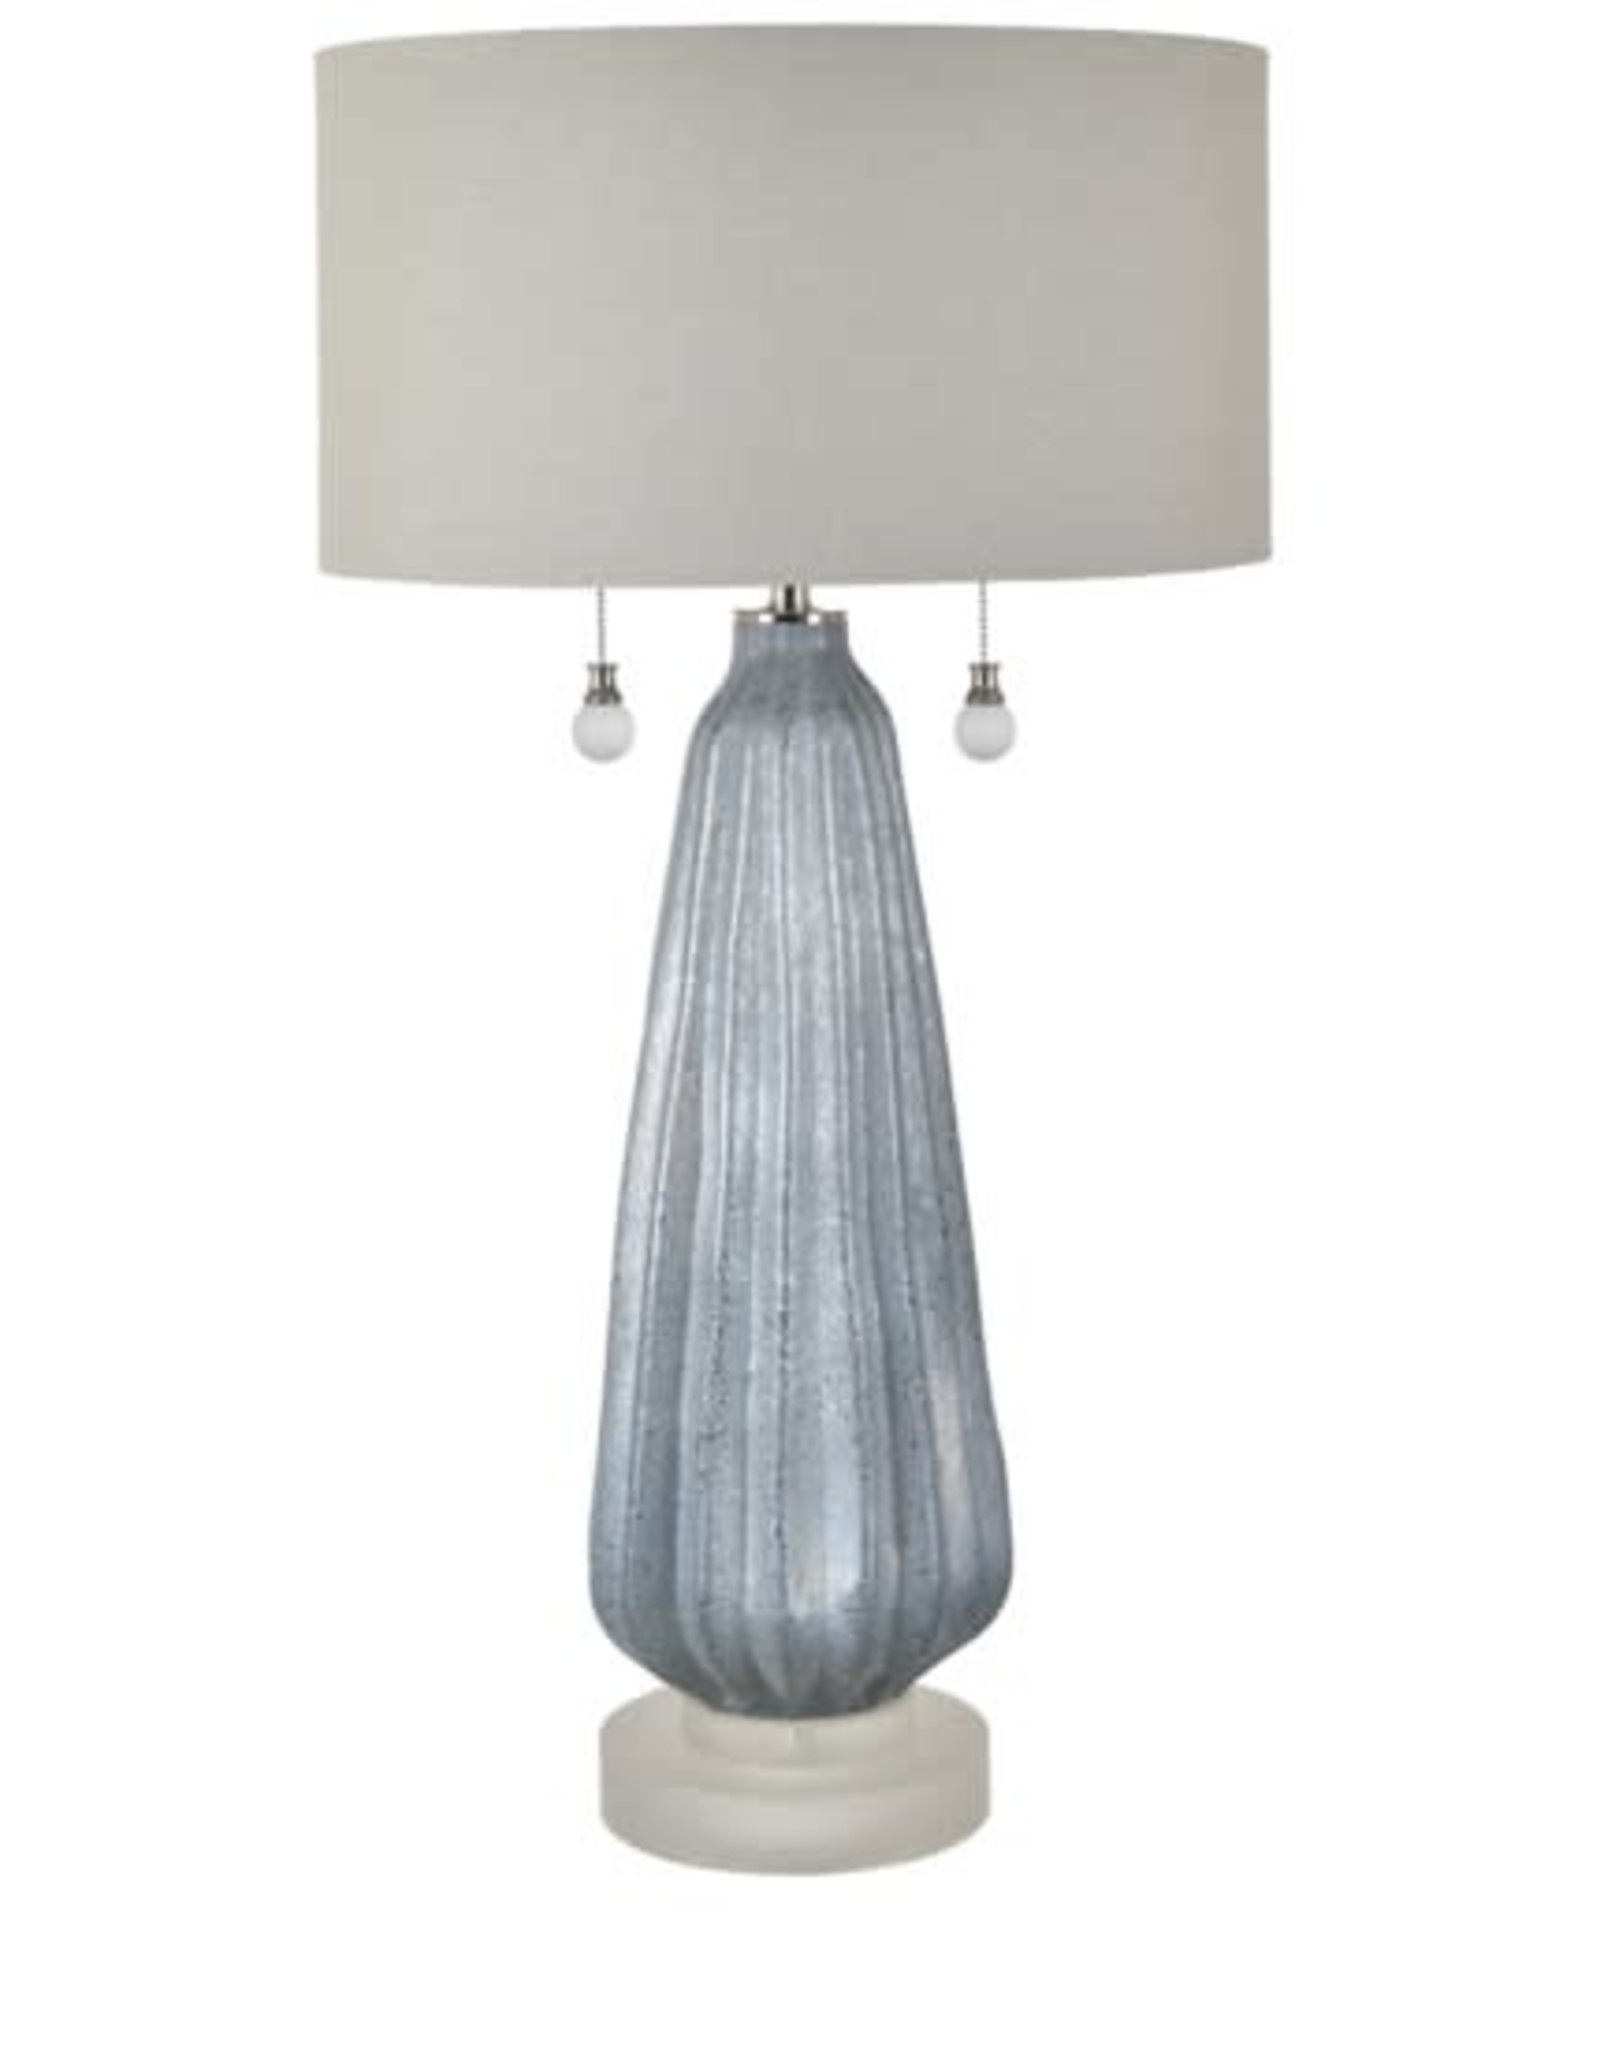 Crestview Blakely Twin Pull Table Lamp w/ Shade